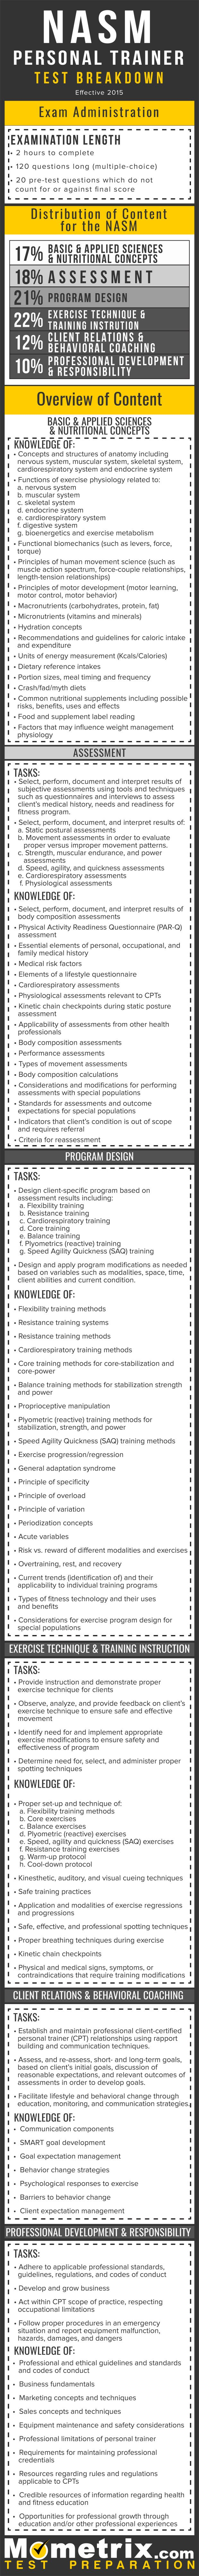 Nasm Personal Trainer Certification Ctp Pinterest Personal